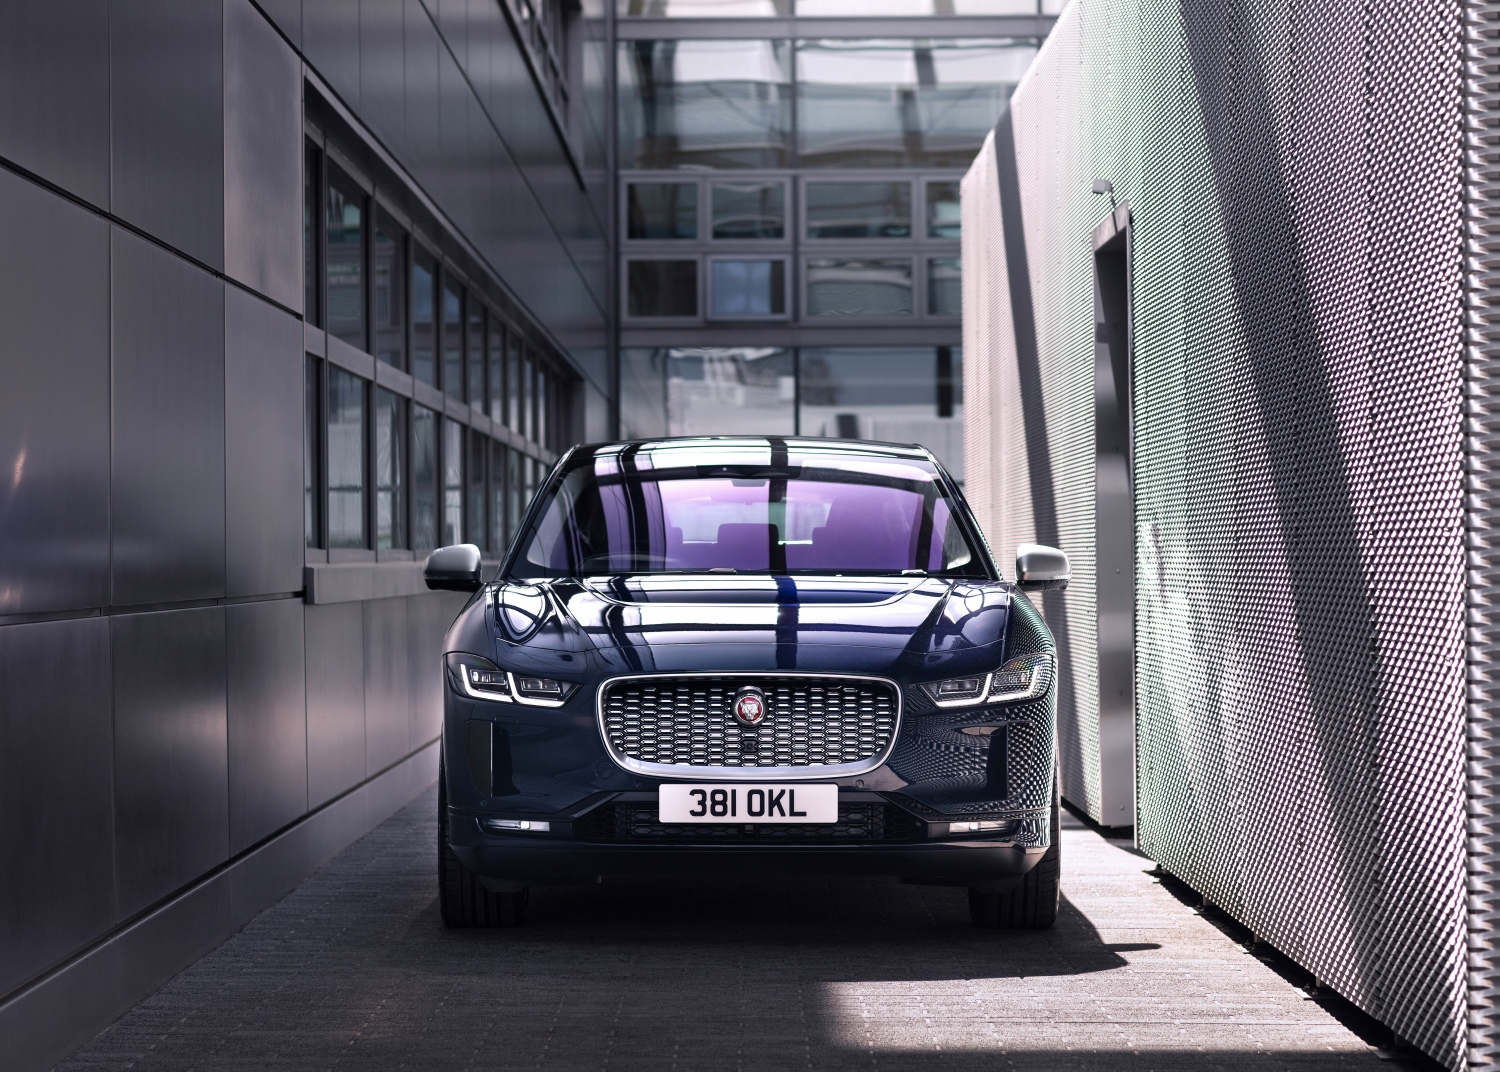 Jaguar I-pace now Smarter, Better Connected and Faster-charging - Image 2